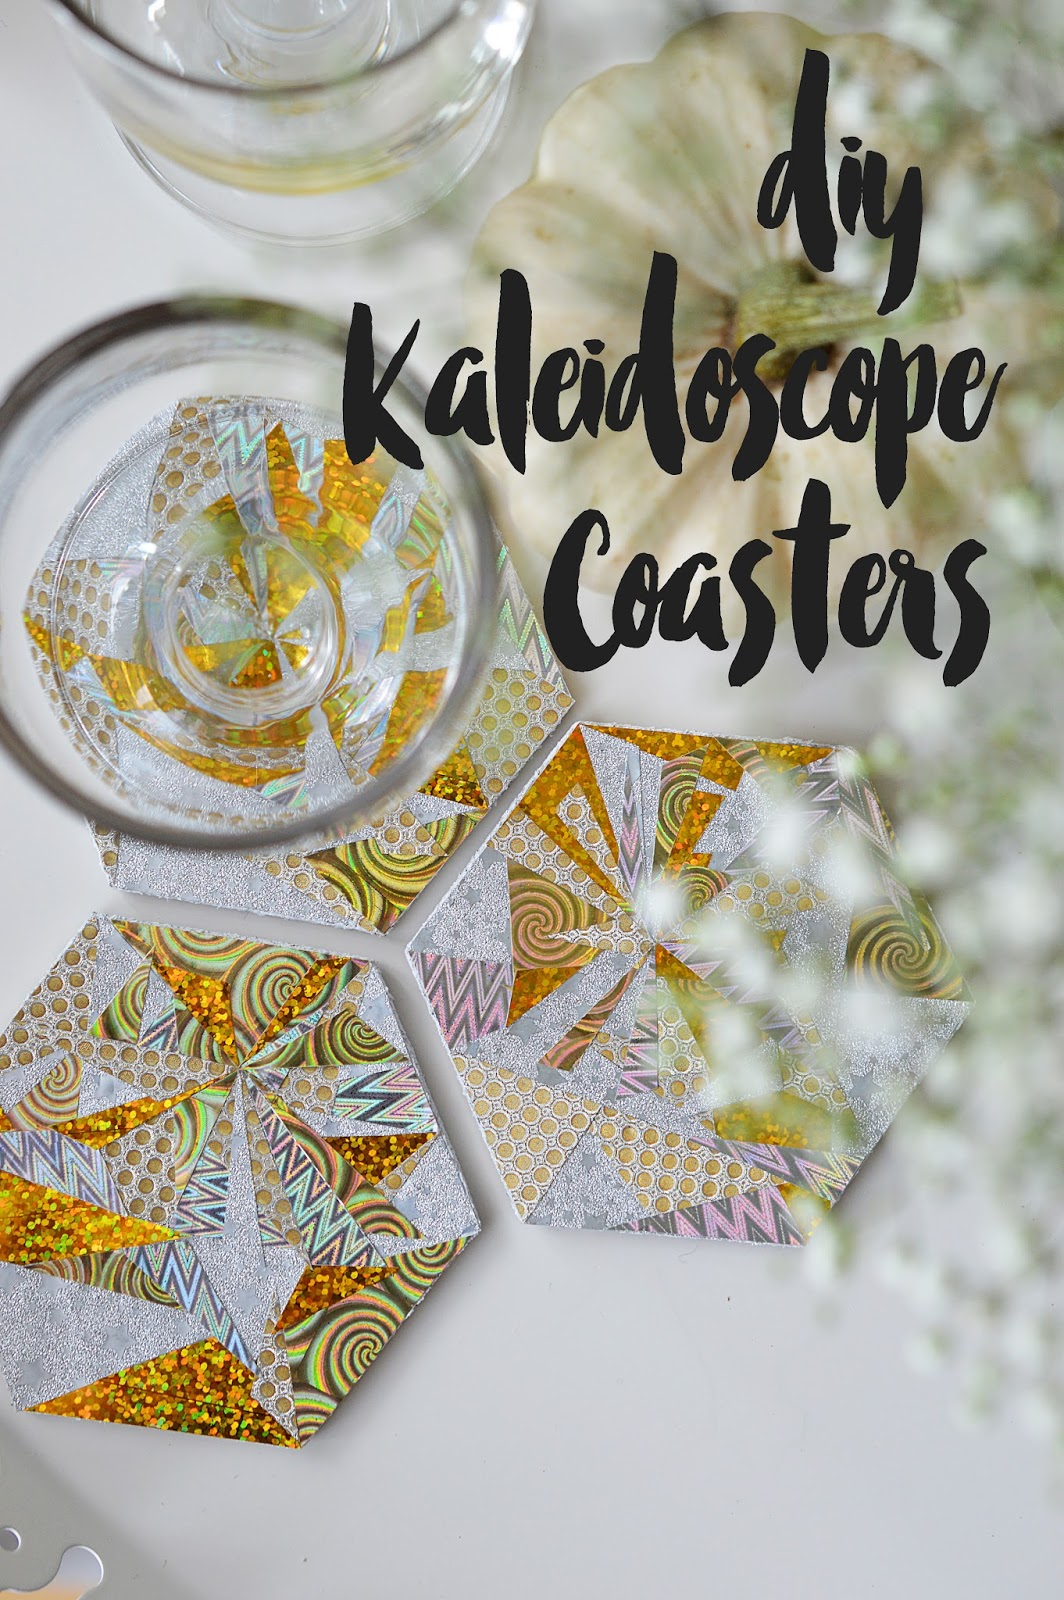 DIY Kaleidoscope Coasters | Motte's Blog